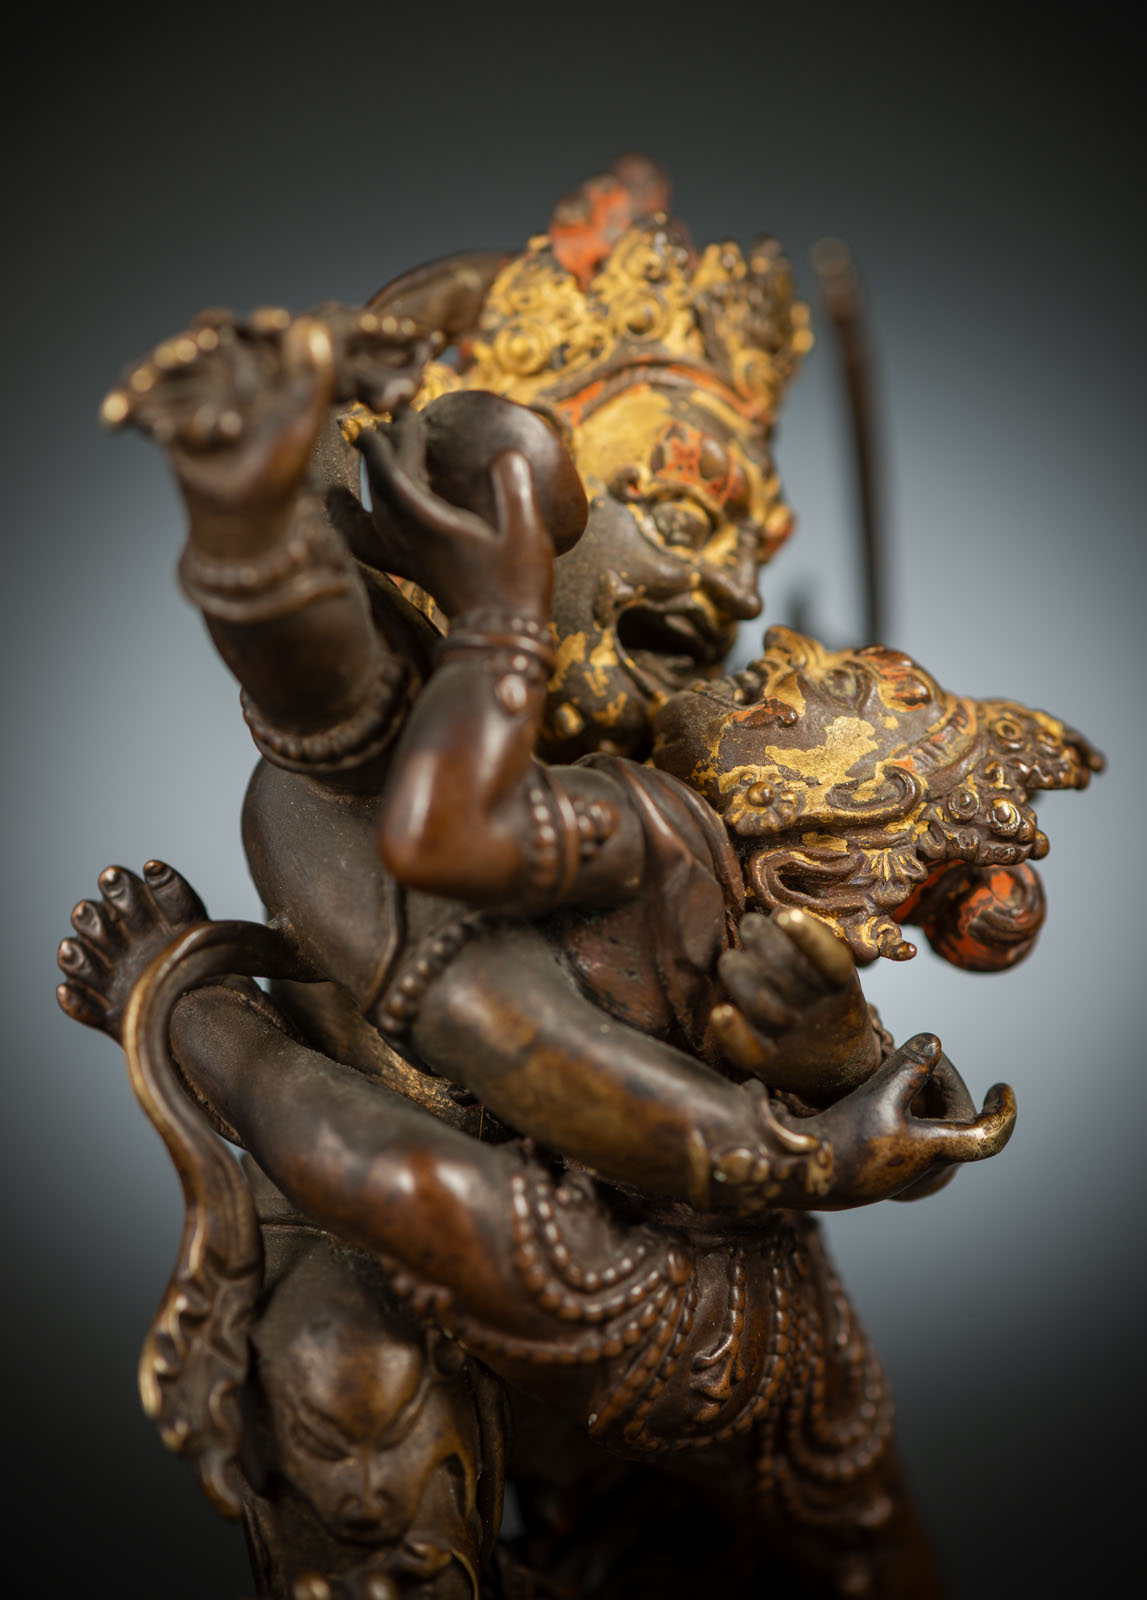 A RARE BRONZE EMANATION OF VAJRAPANI ON A LOTUS - Image 4 of 10